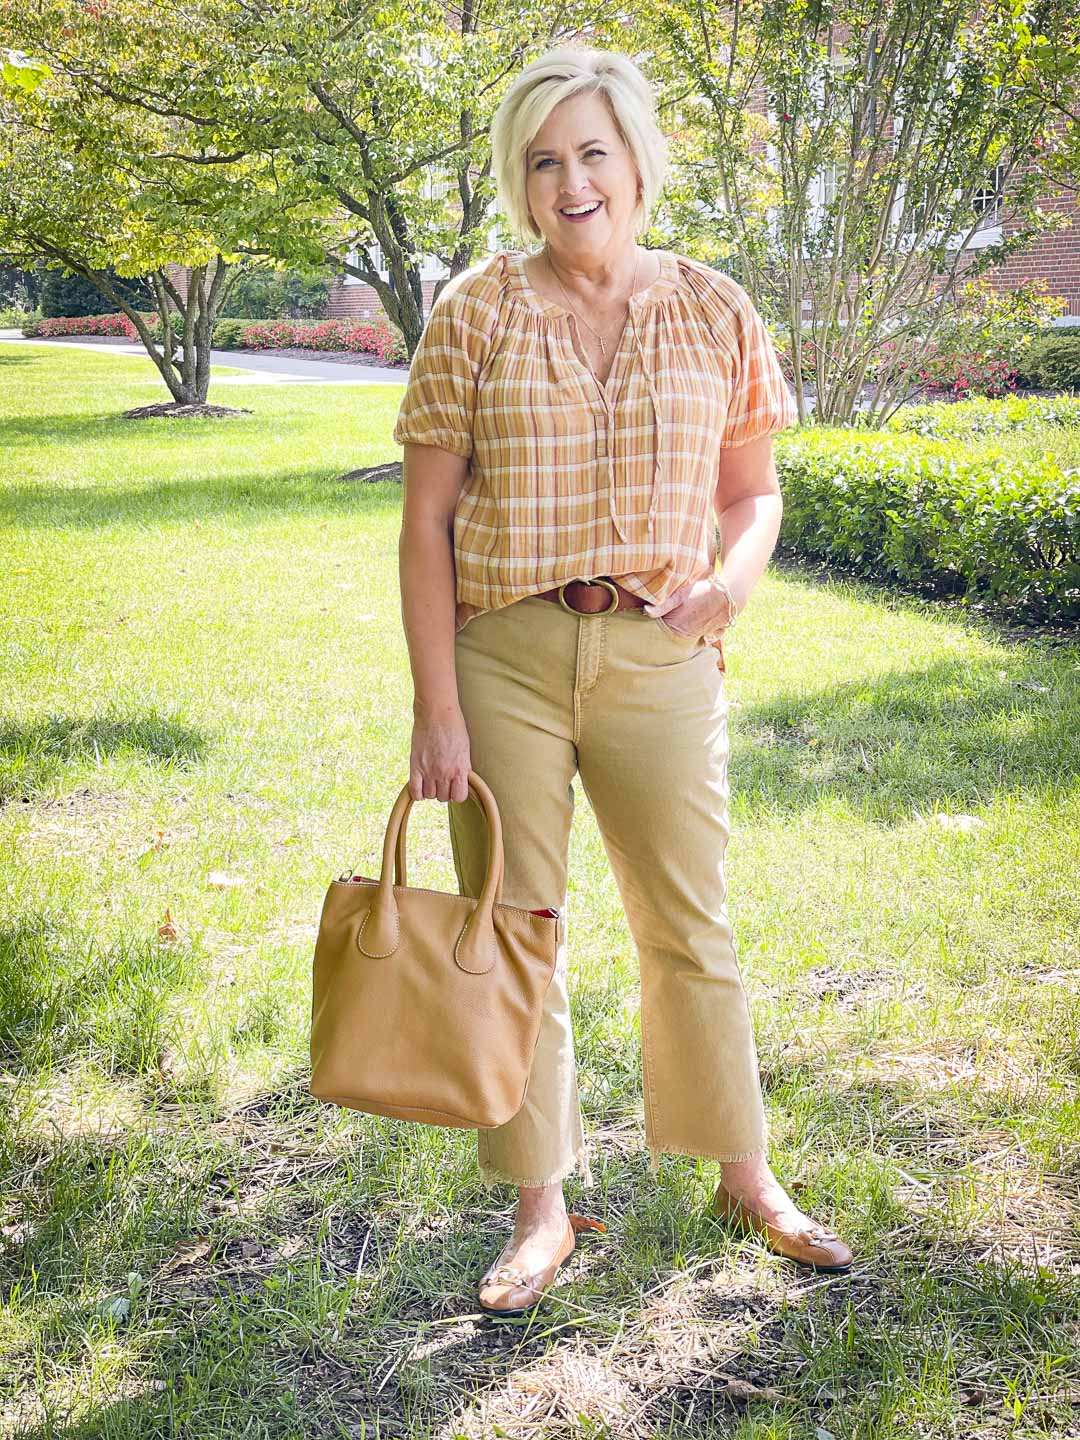 Over 40 Fashion Blogger, Tania Stephens, looks casual in her fall festive plaid top, cropped jeans, and camel handbag